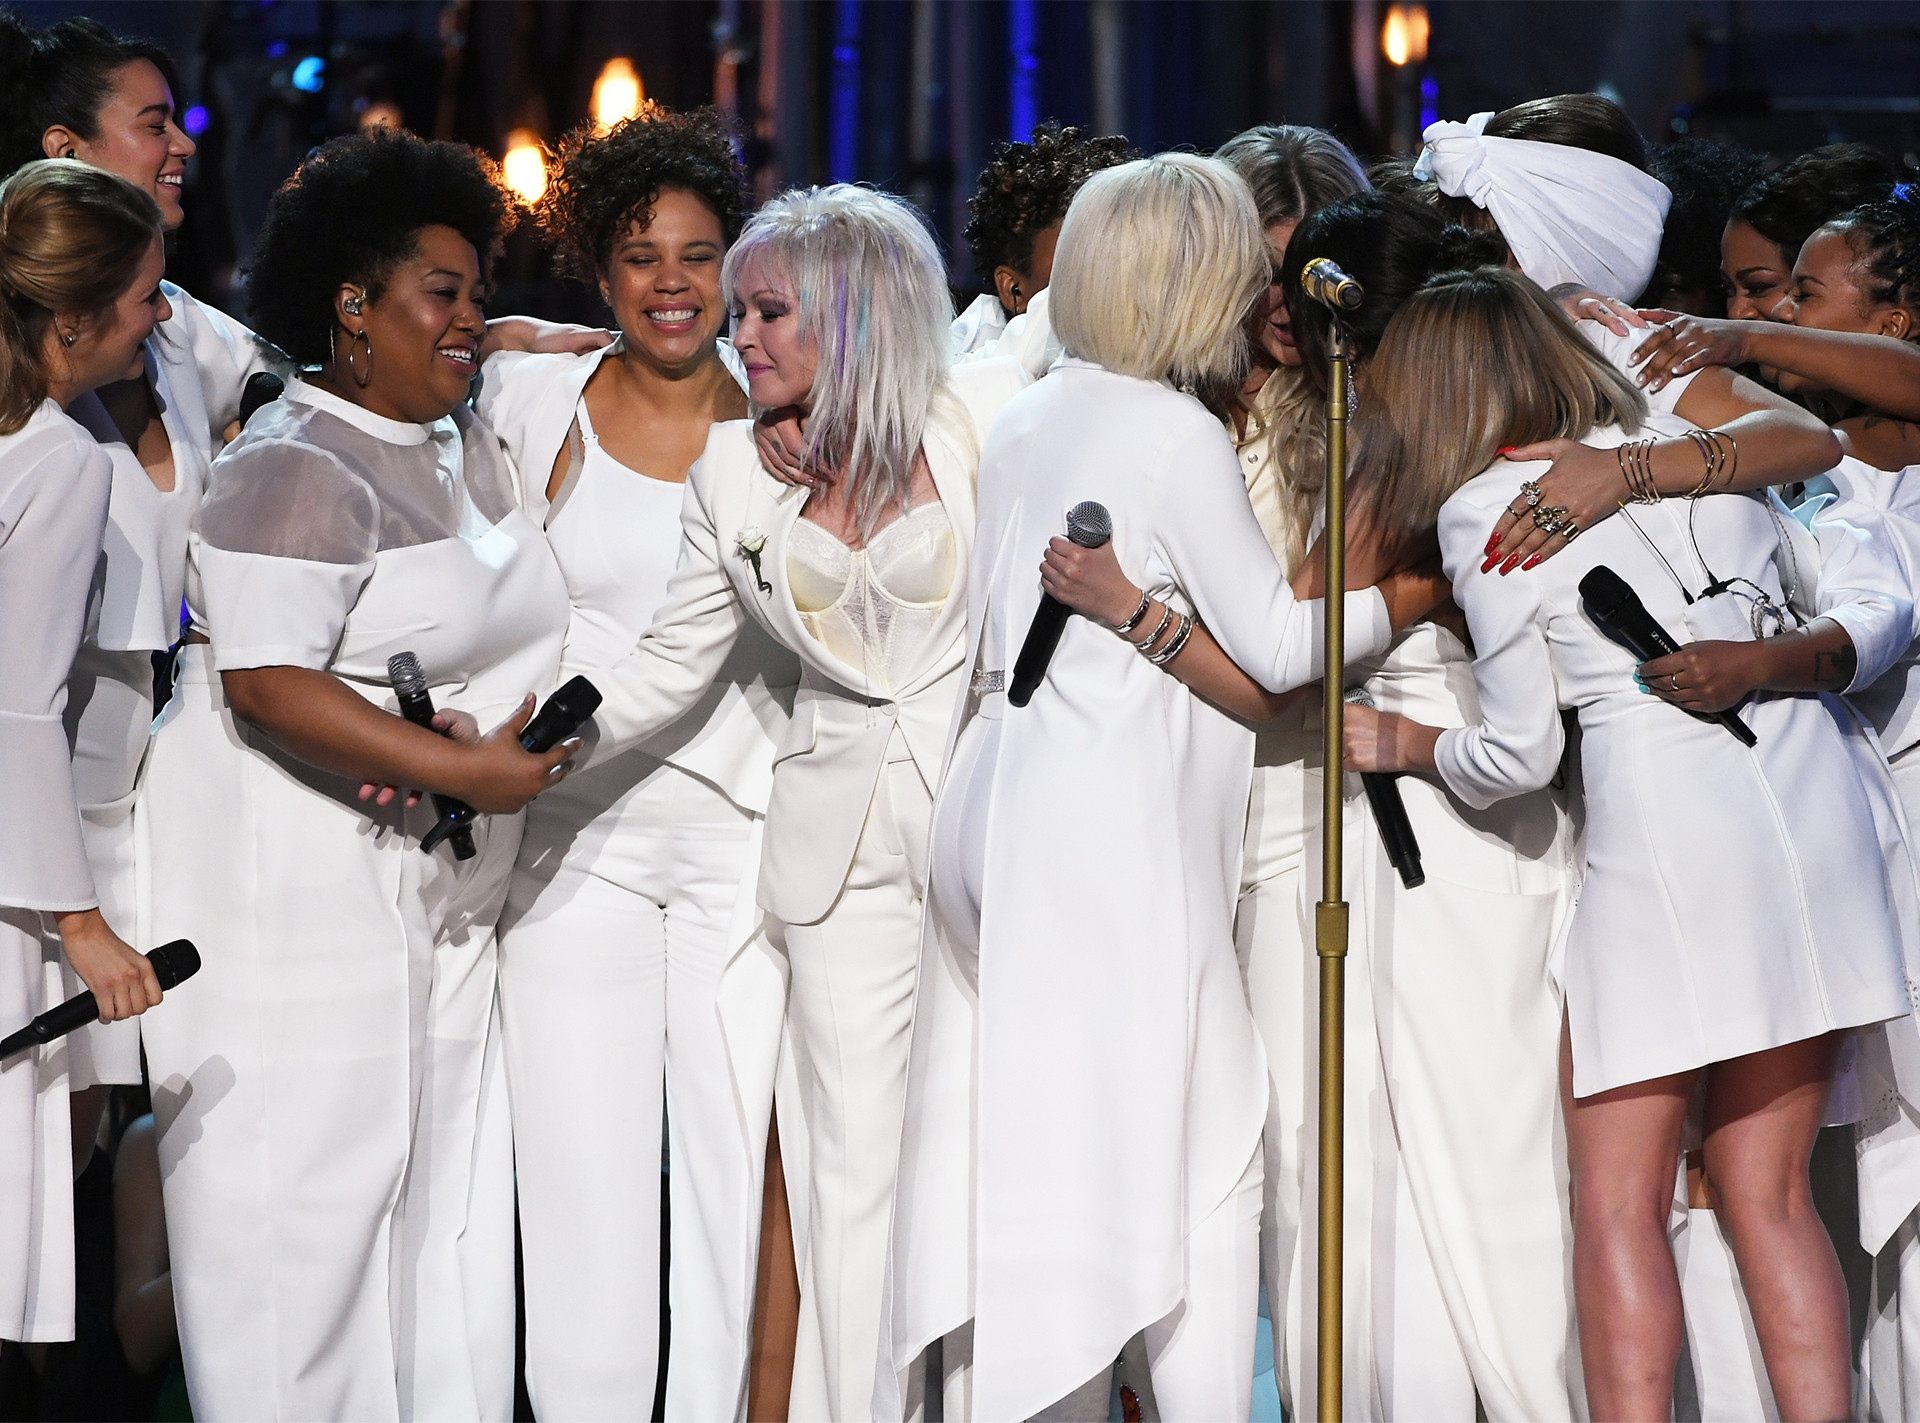 Cyndi Lauper, Bebe Rexha, Kesha, Camila Cabello, Andra Day, 2018 Grammy Awards, Performances